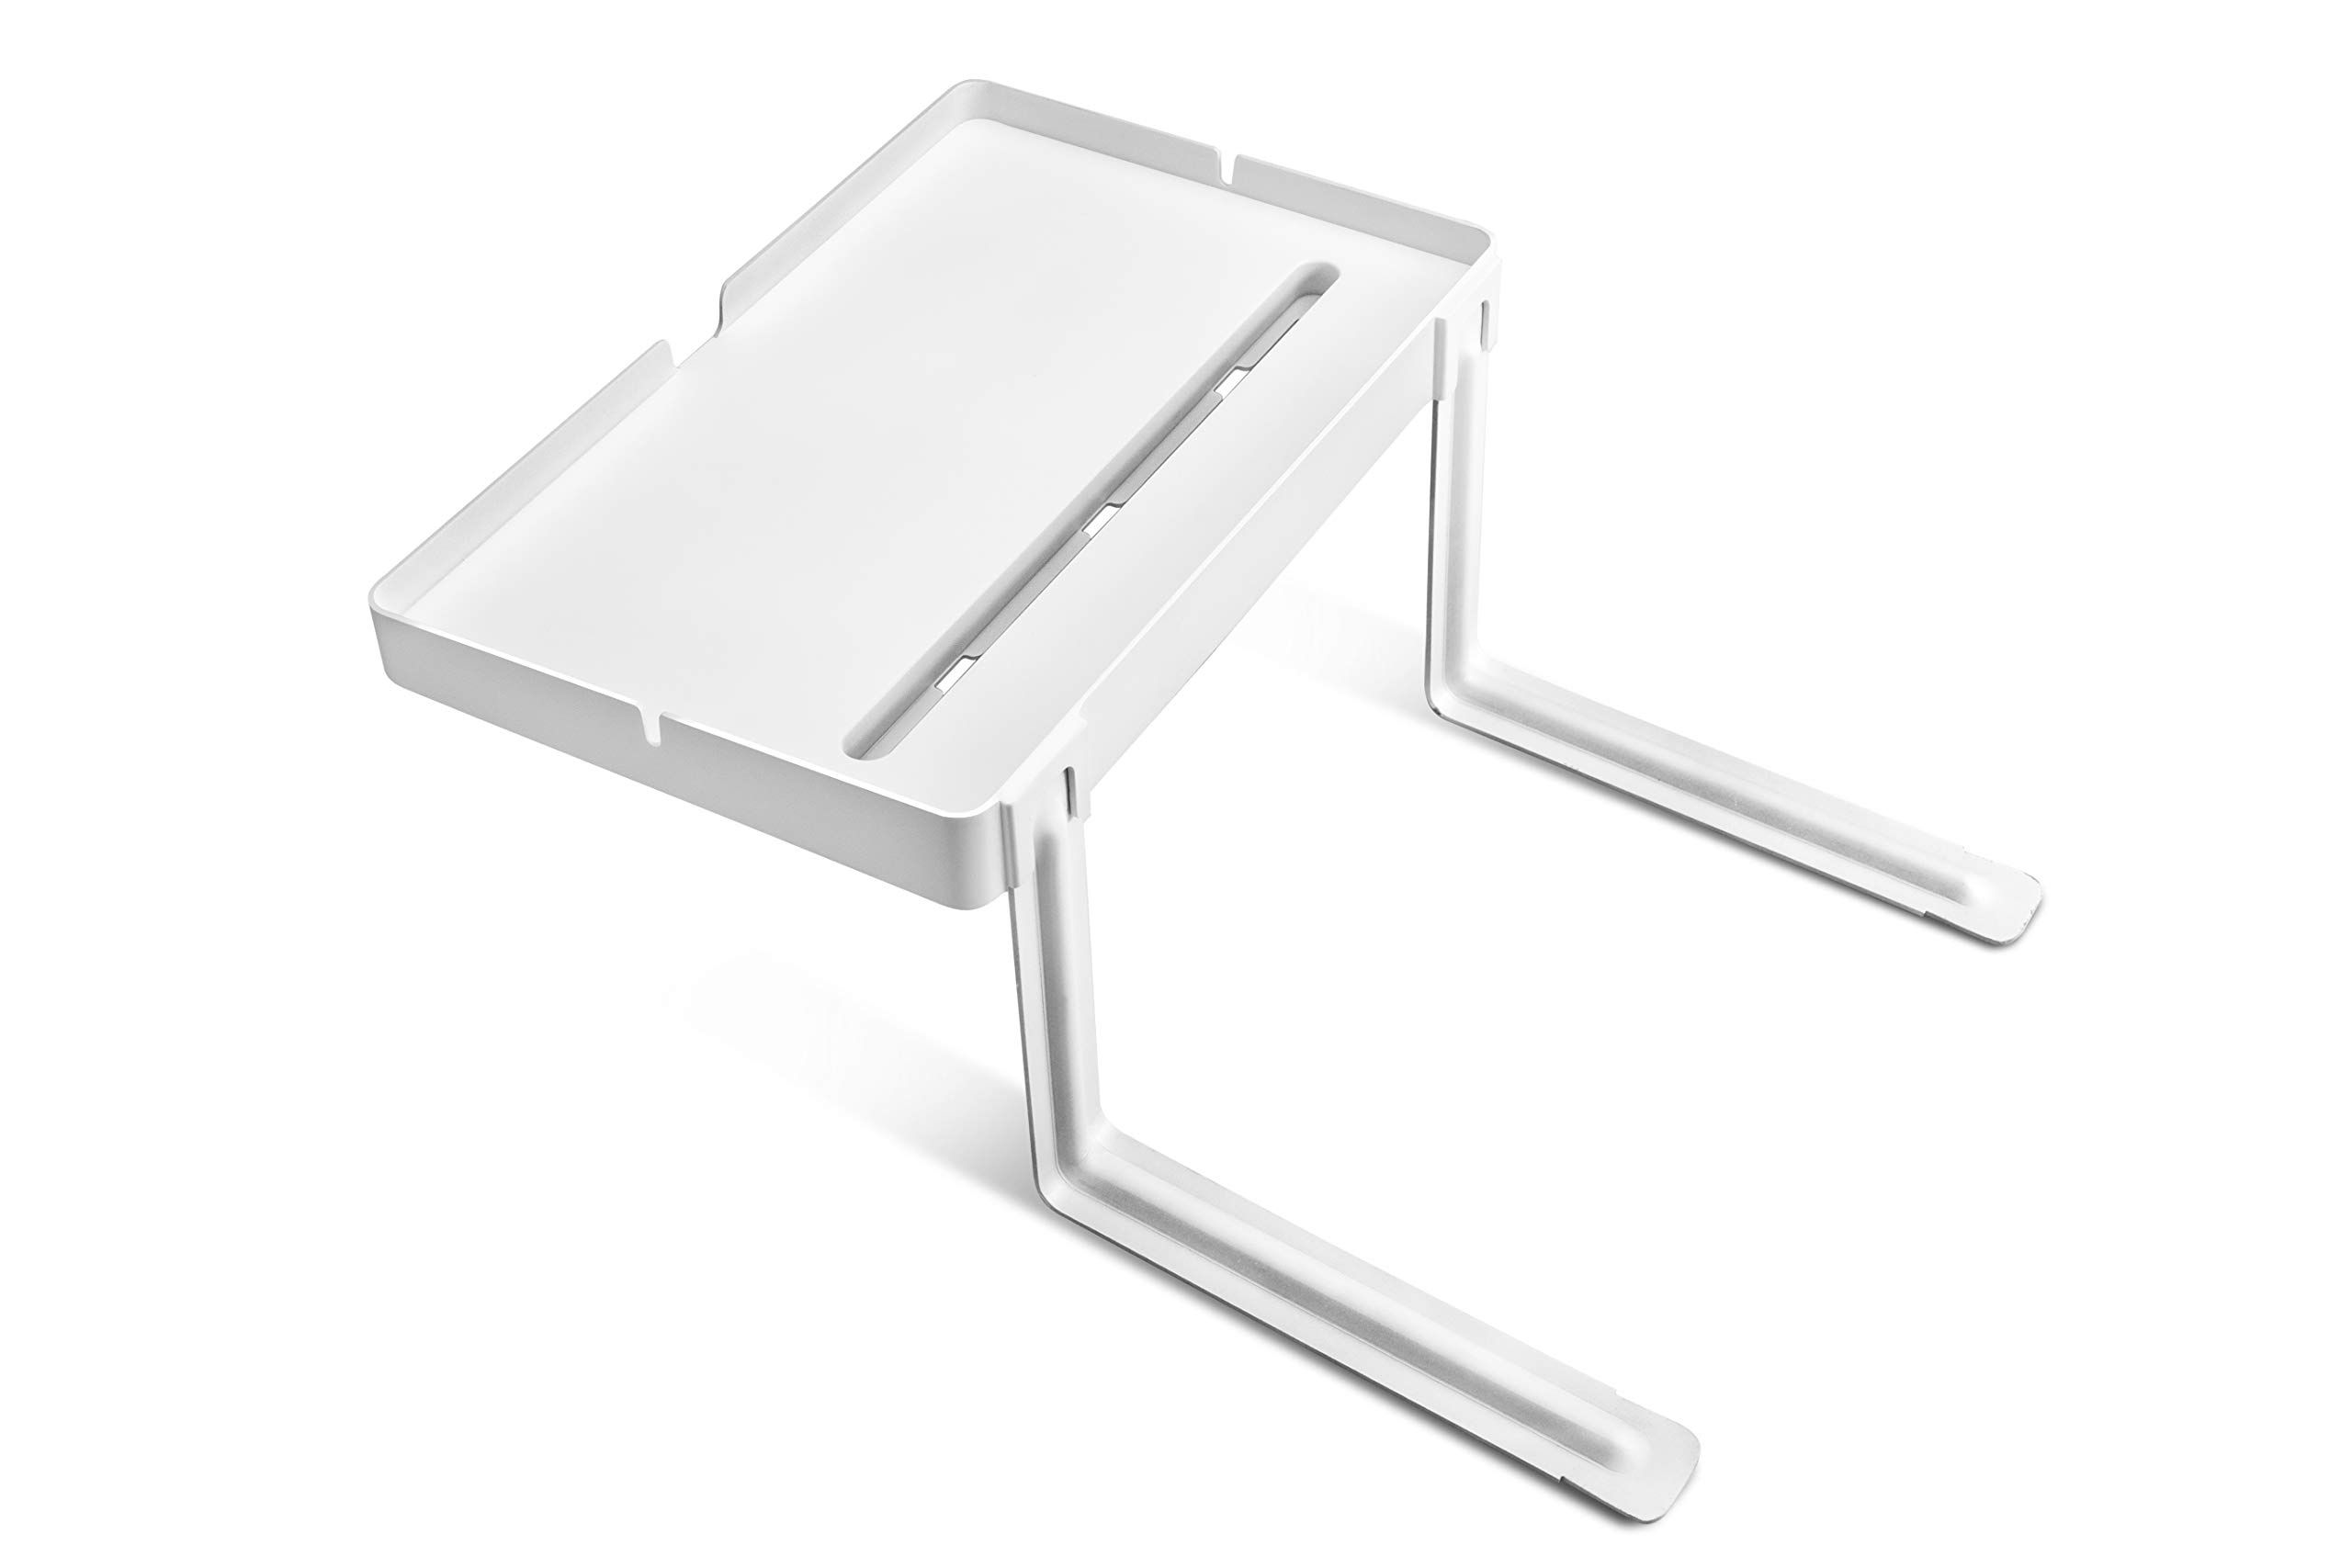 Phone Bed_Bedside Shelf, Bedside nightstand with Cable Management, Tablet Holder, Table, Very Simple & Easy Assemble…